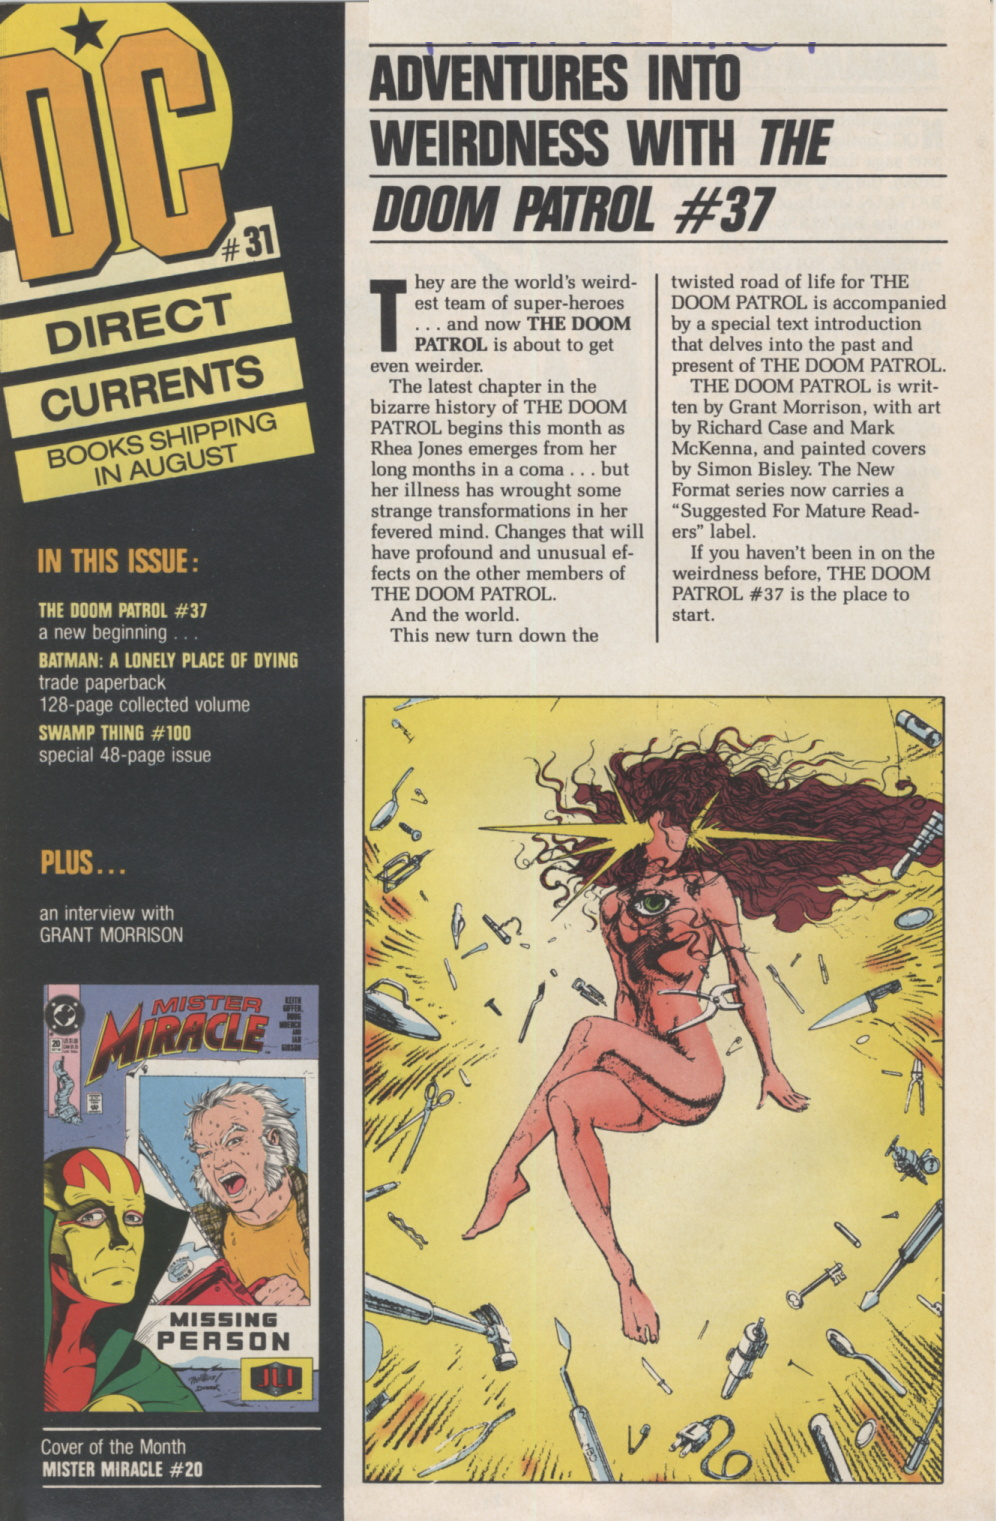 Time Capsule: DC Direct Currents 31 August 1990